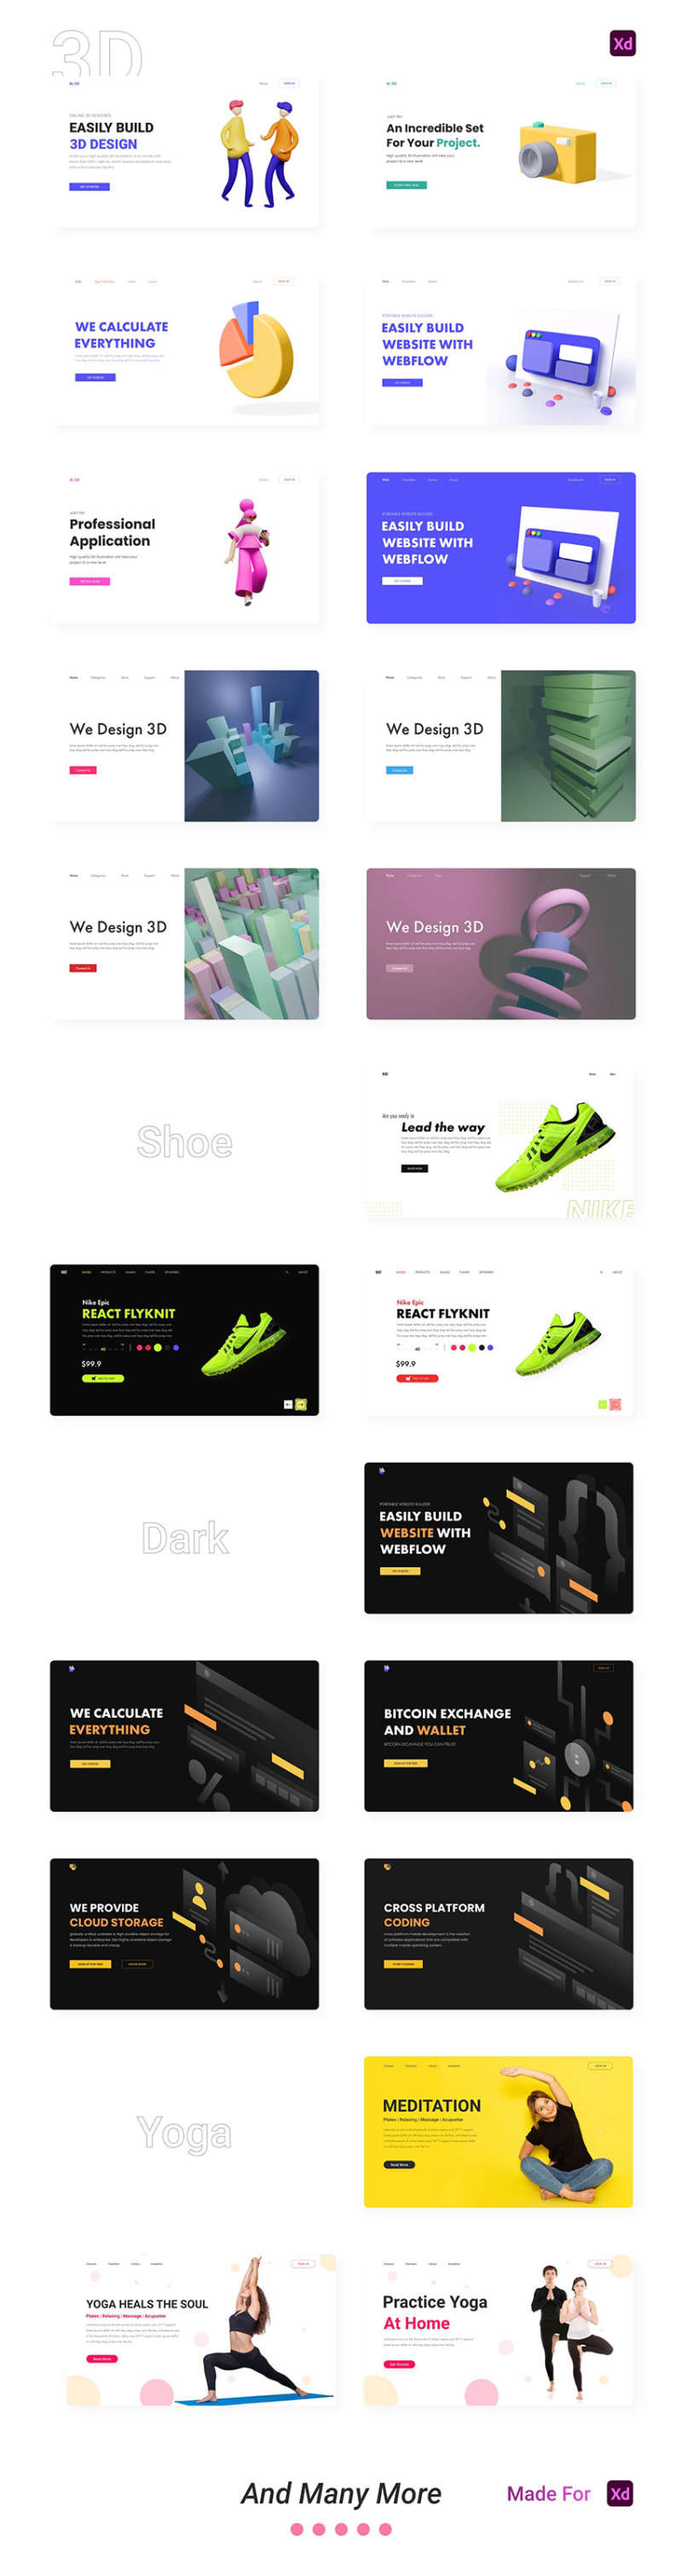 42 Landing page concepts